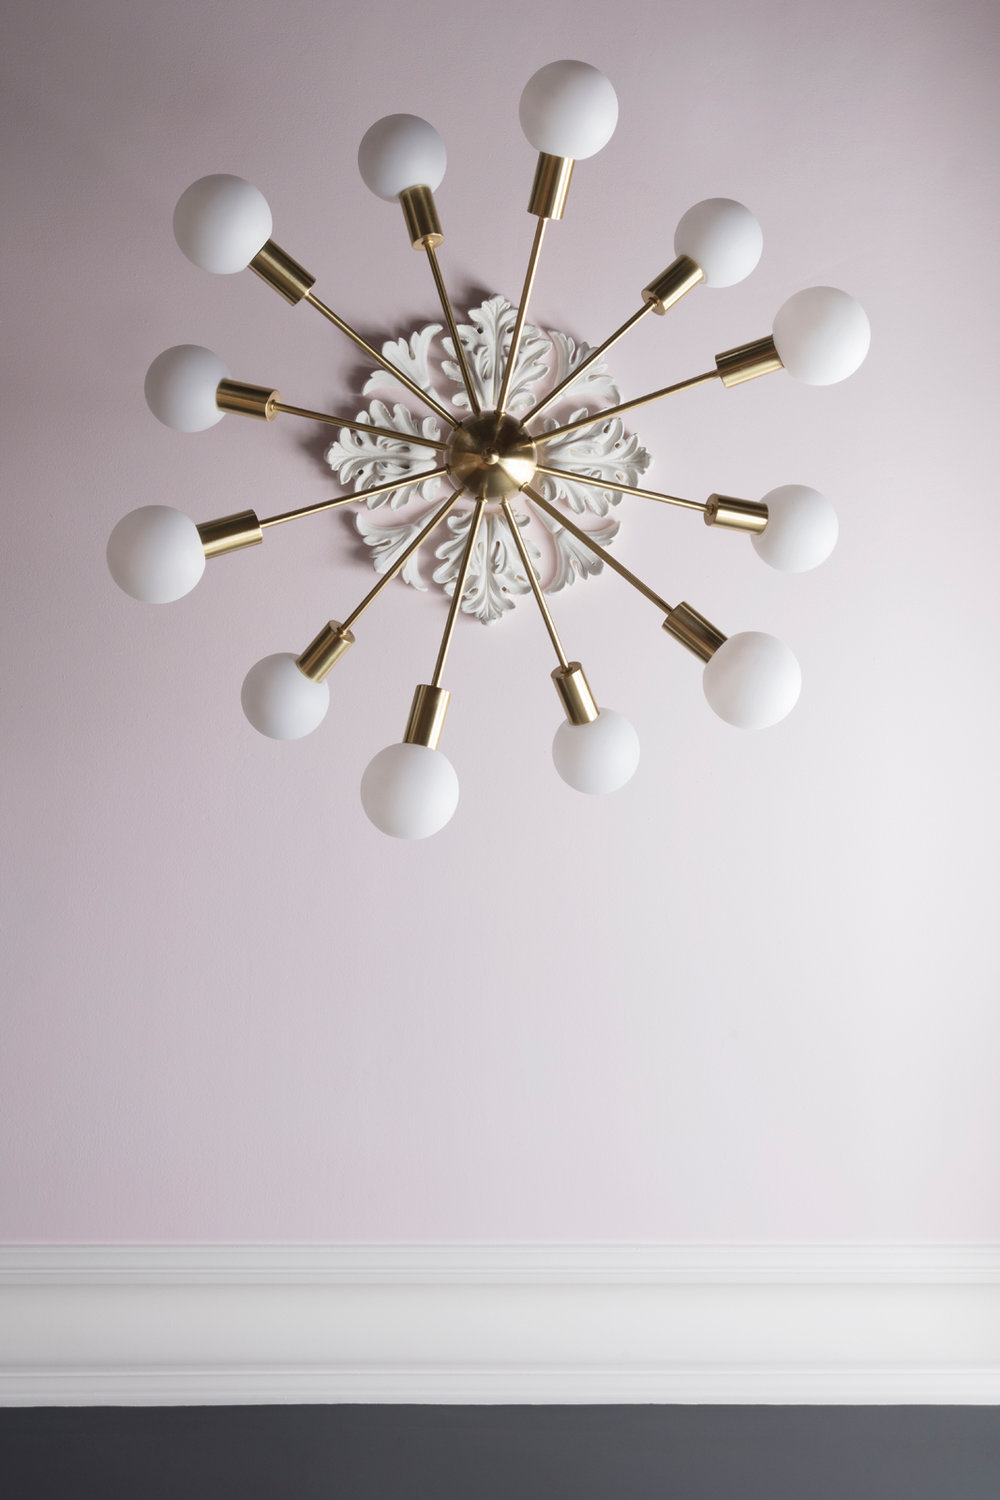 AFTER! Dexter sputnik light from Marks & Spencer/Photo: Susie Lowe